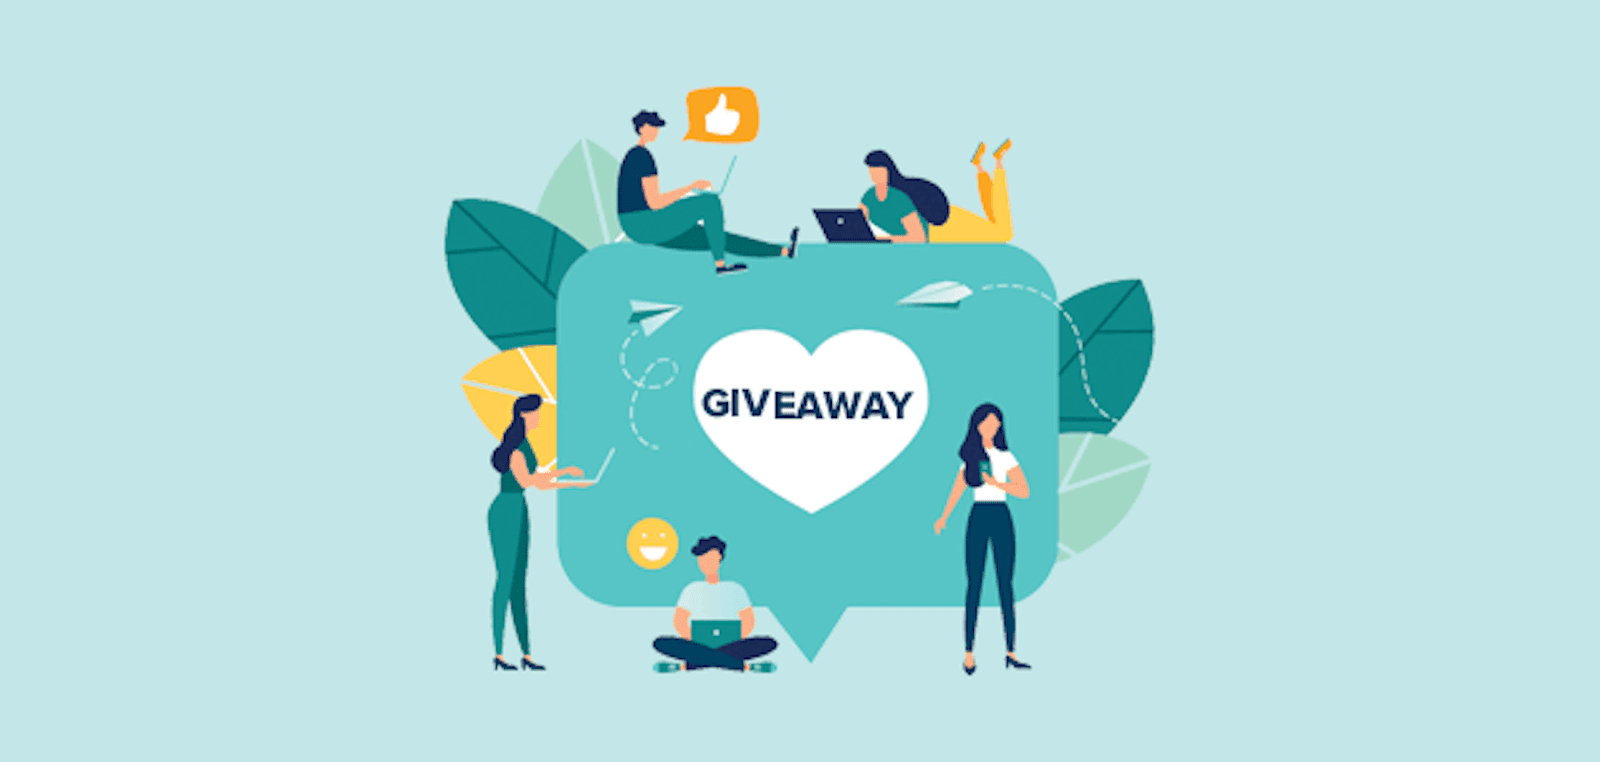 graphic depicting consumers are entering a social media giveaway